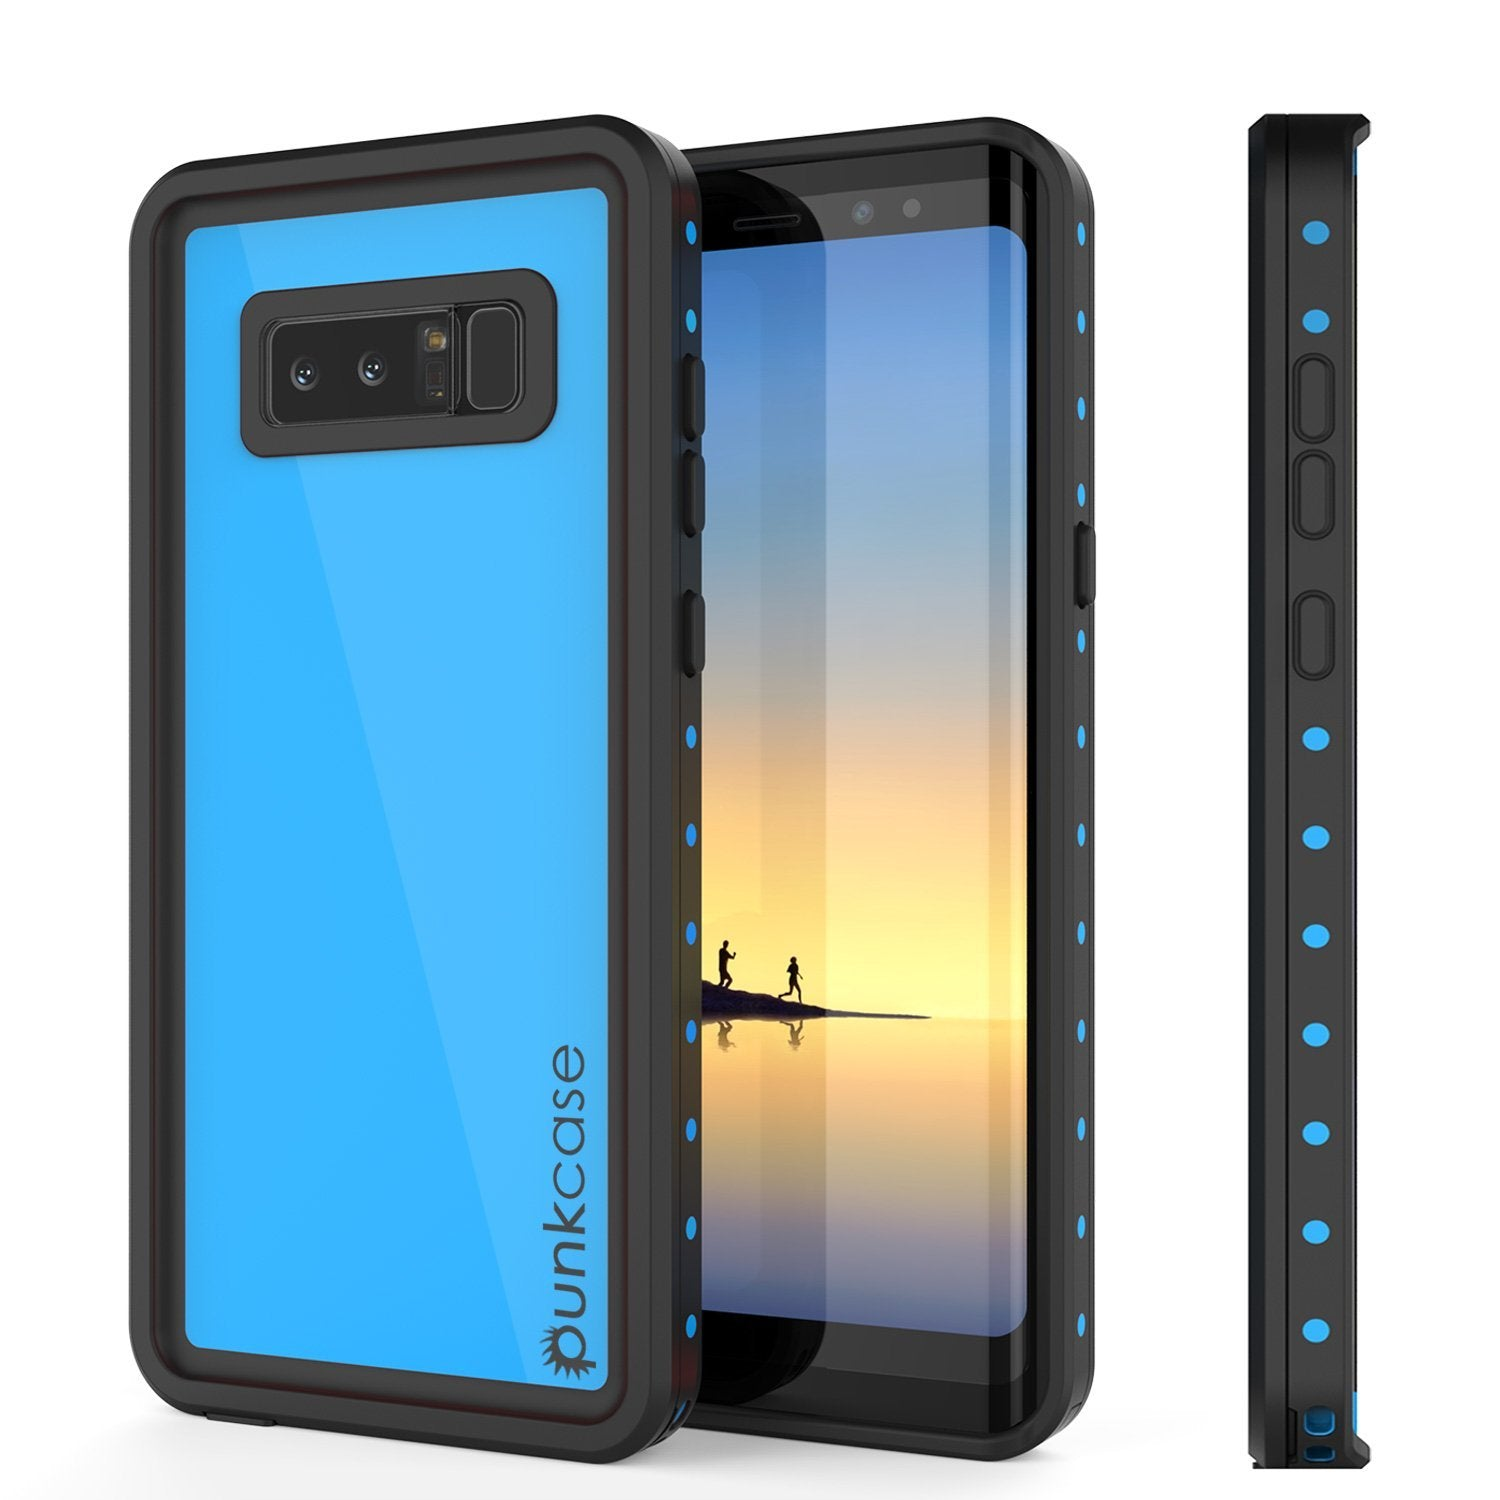 Galaxy Note 8 Waterproof Case PunkCase StudStar Light Blue Thin 6.6ft Underwater IP68 ShockProof